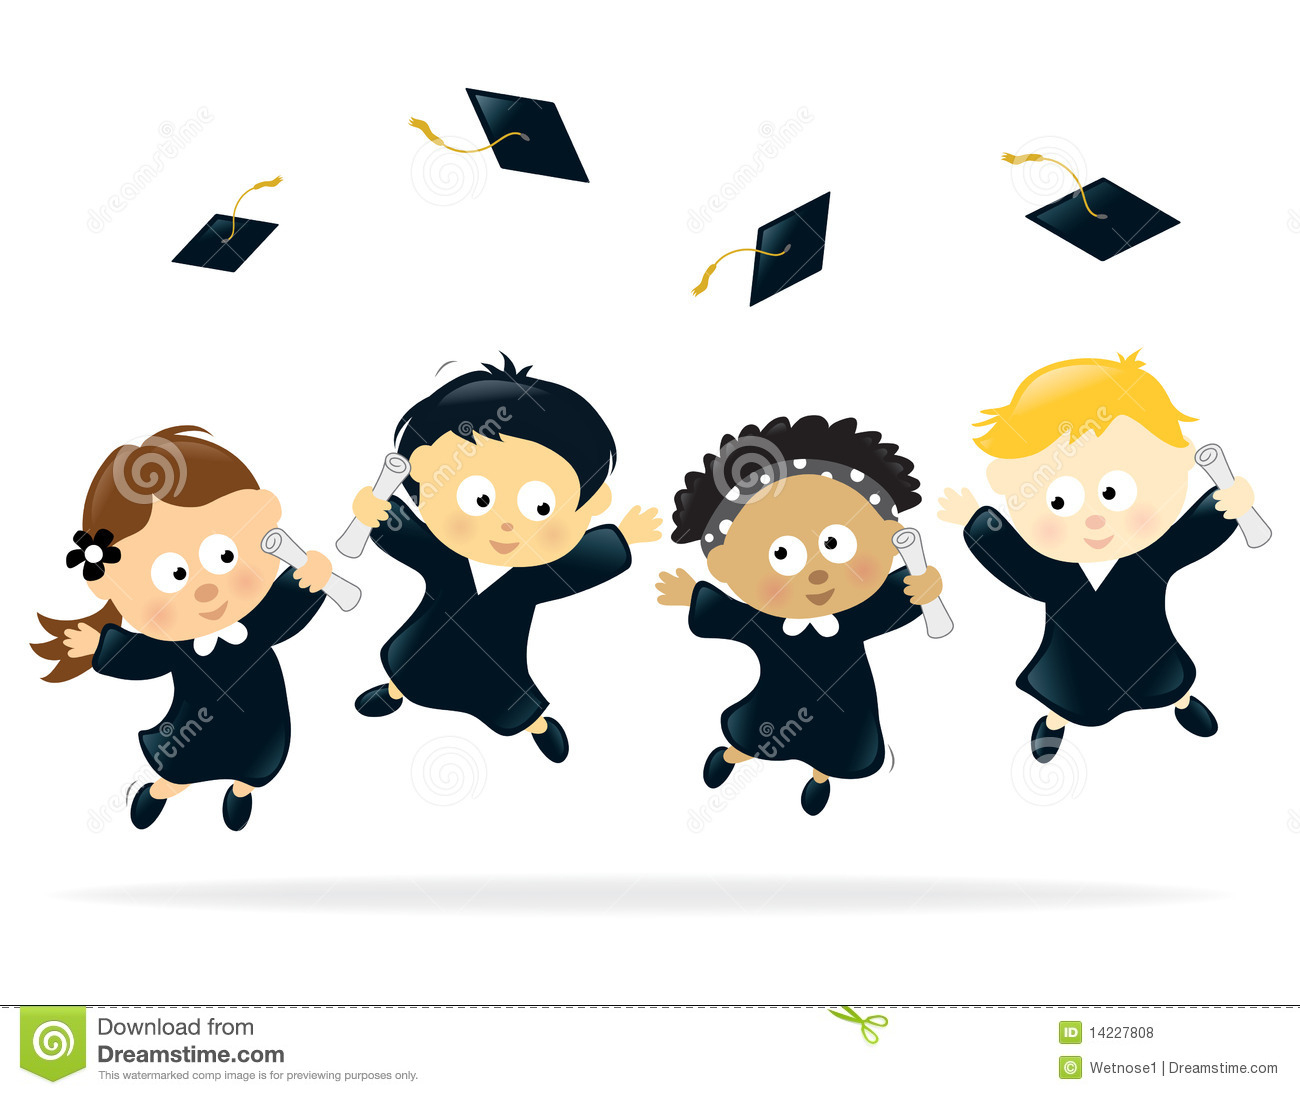 Preschool Graduation Clip Art Free Clipart Collection - Free Printable Kindergarten Graduation Clipart